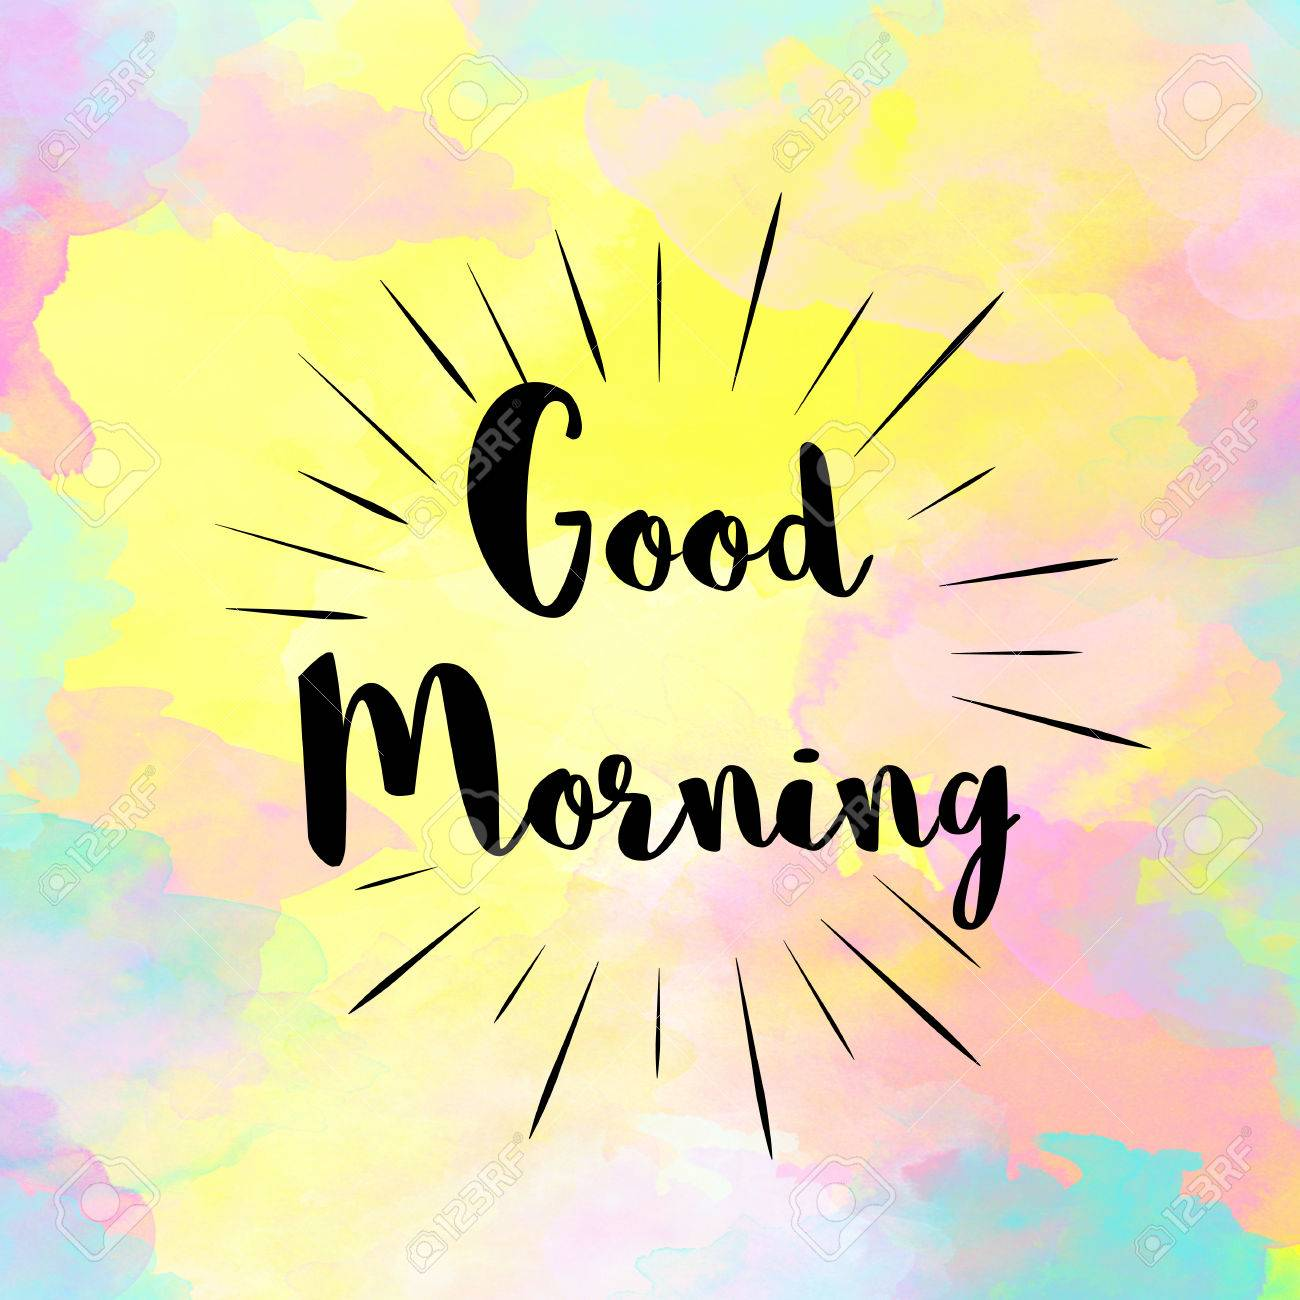 Good Morning Message On Watercolor Painted Background Stock Photo   56708521